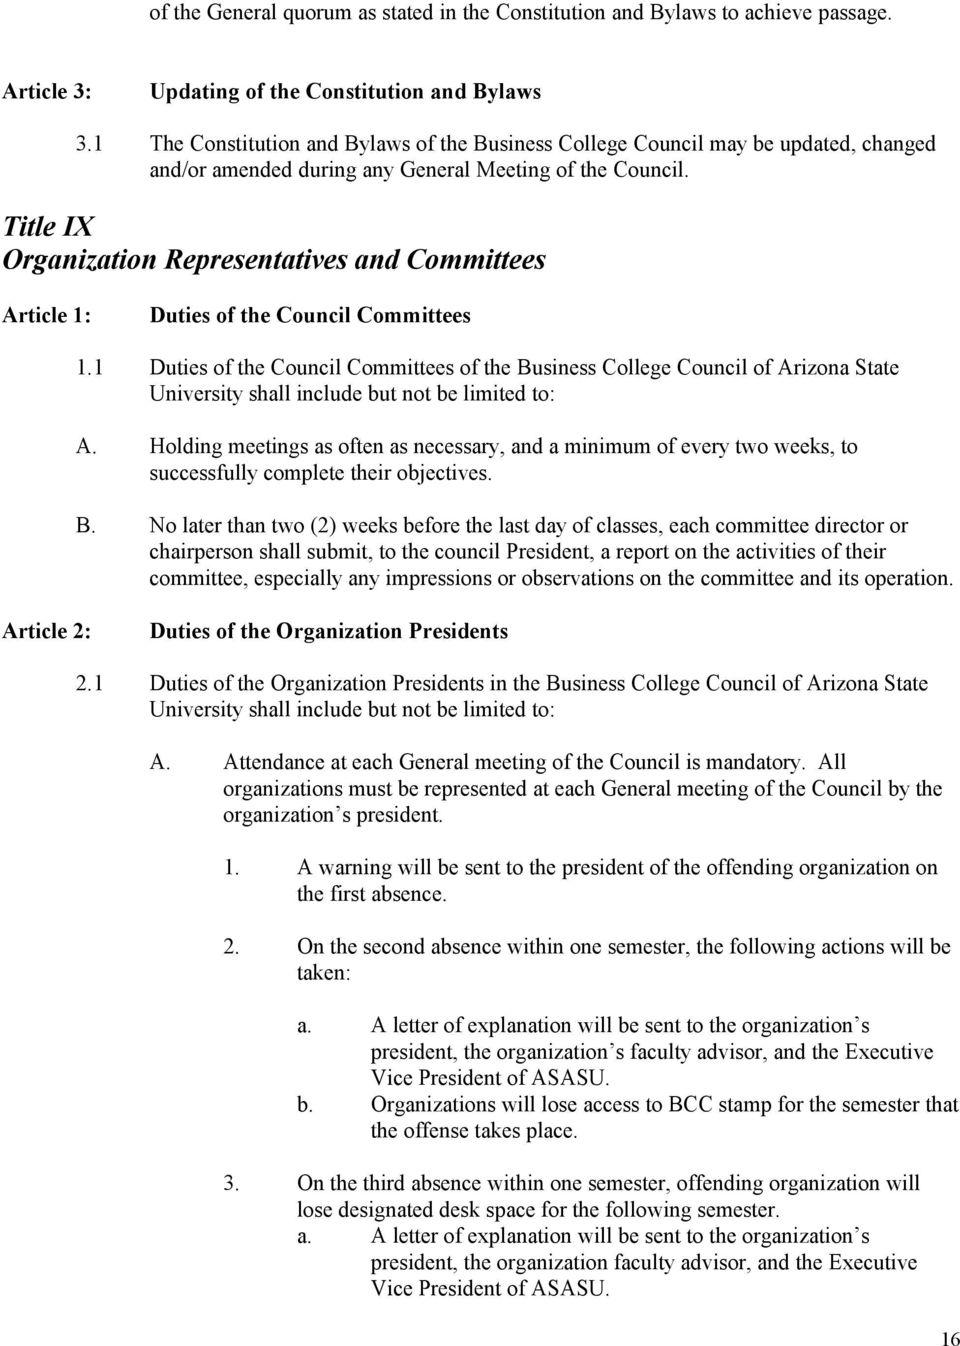 Title IX Organization Representatives and Committees Duties of the Council Committees 1.